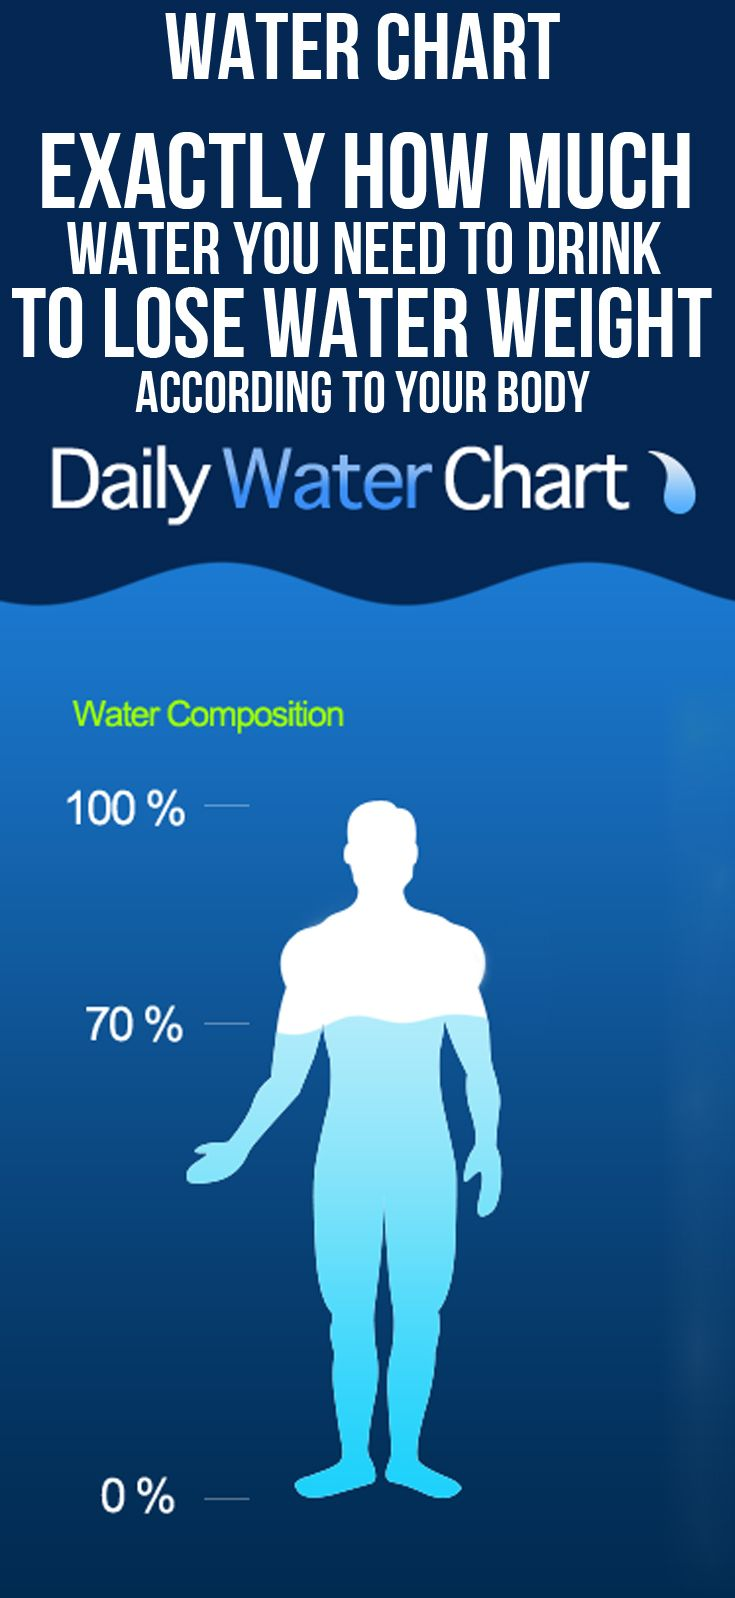 Water chart exactly how much you need to drink lose weight according also rh pinterest